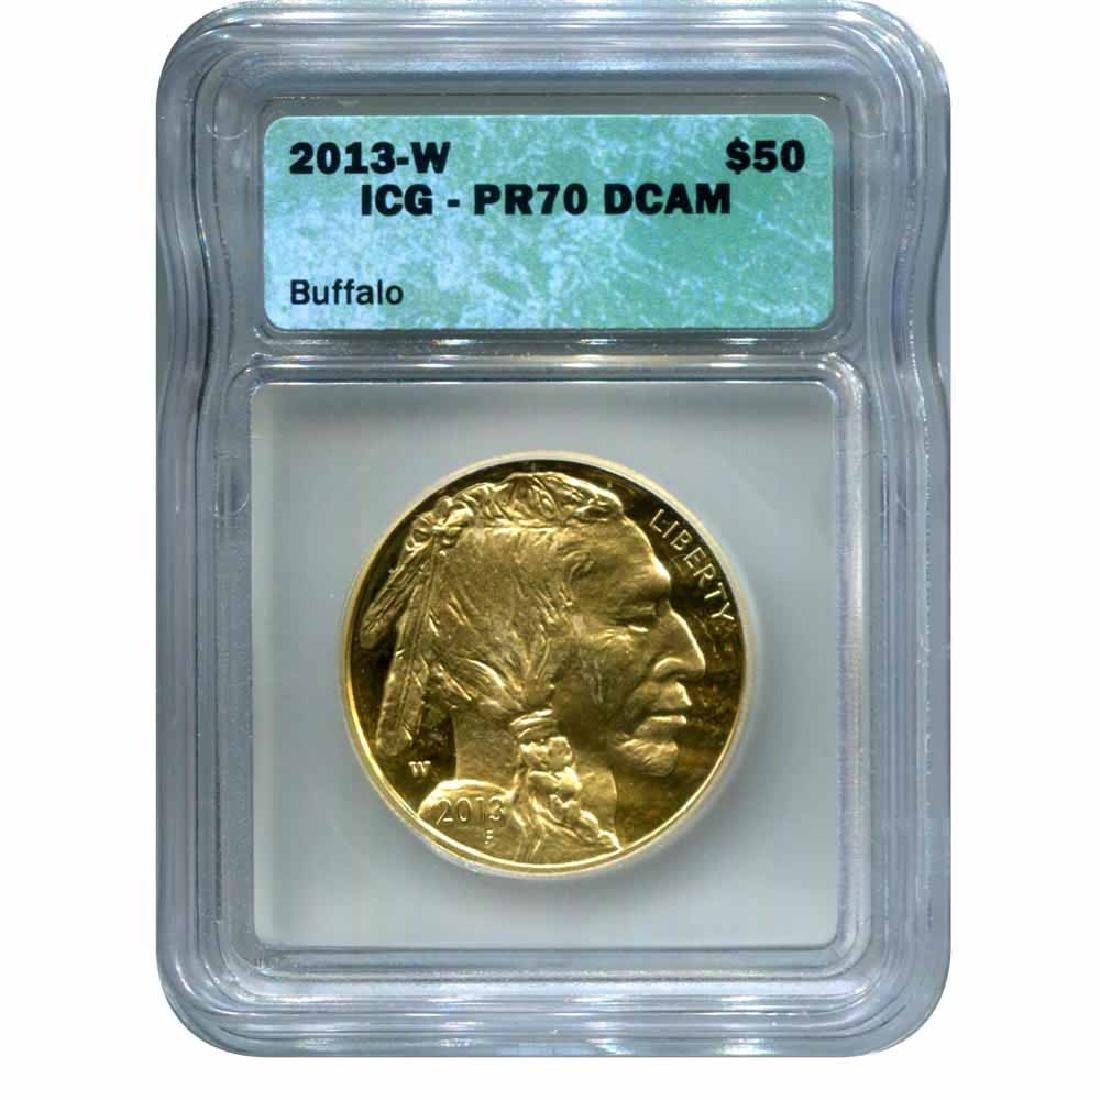 Certified Proof Buffalo Gold Coin 2013-W PF70 ICG